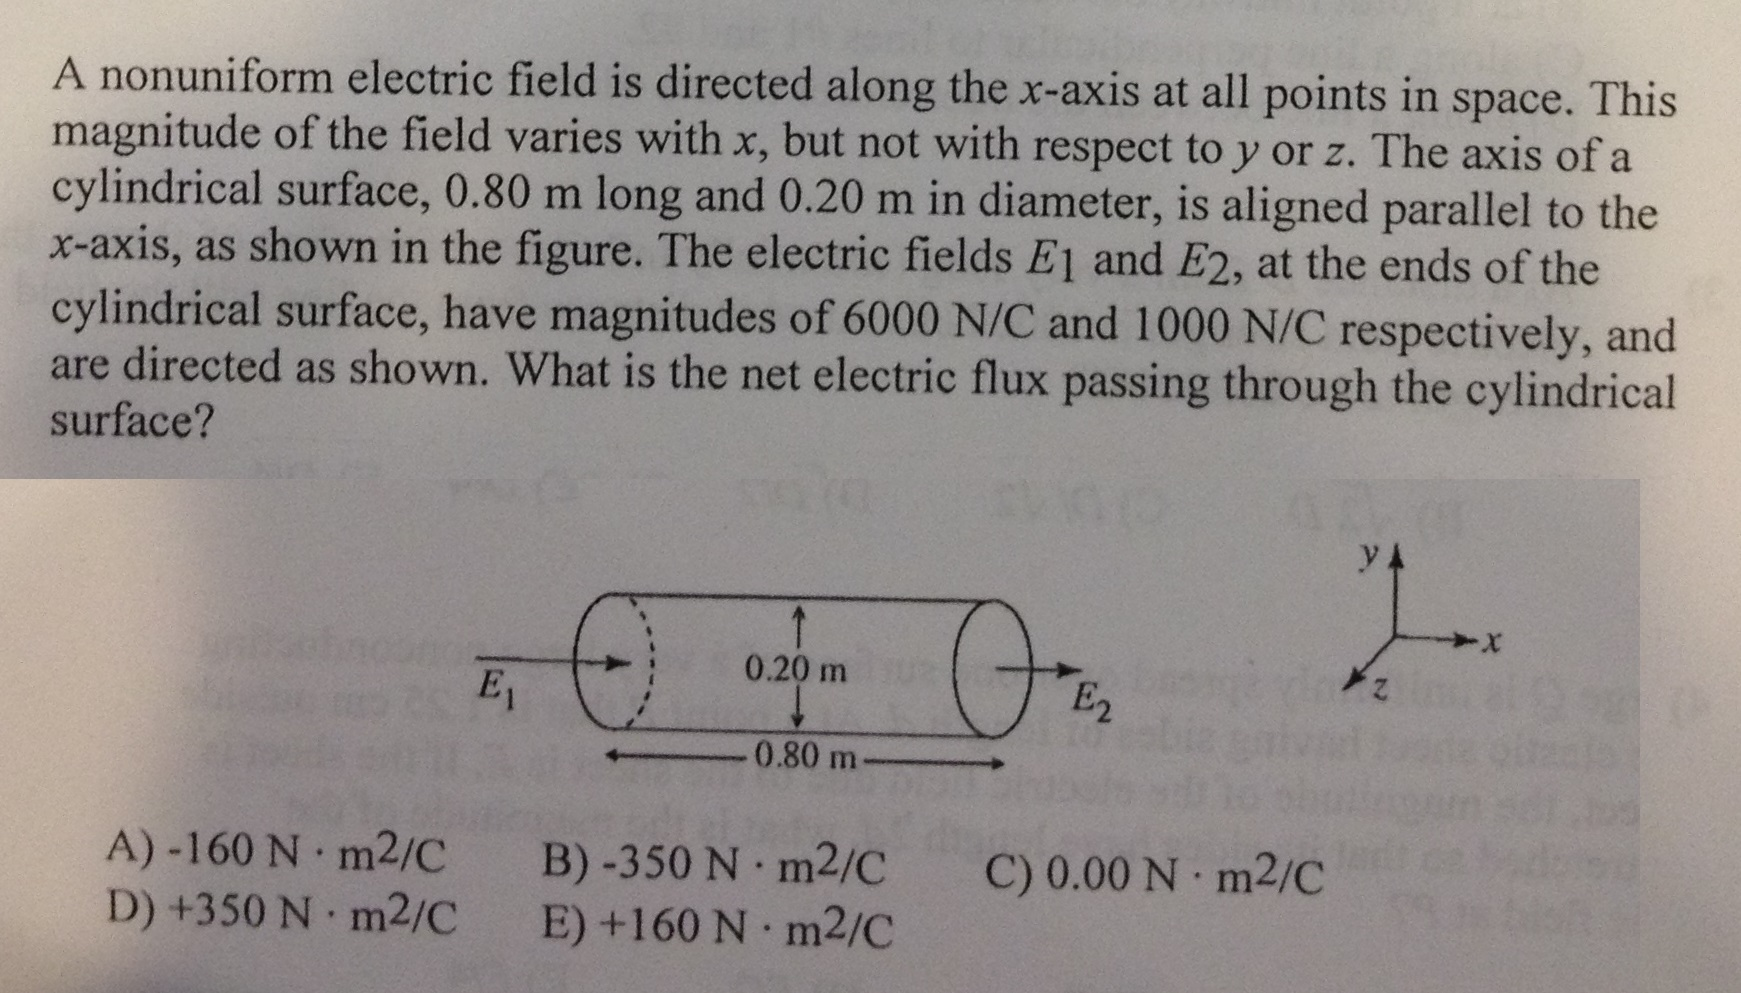 A Nonuniform Electric Field Is Directed Along The ... | Chegg.com